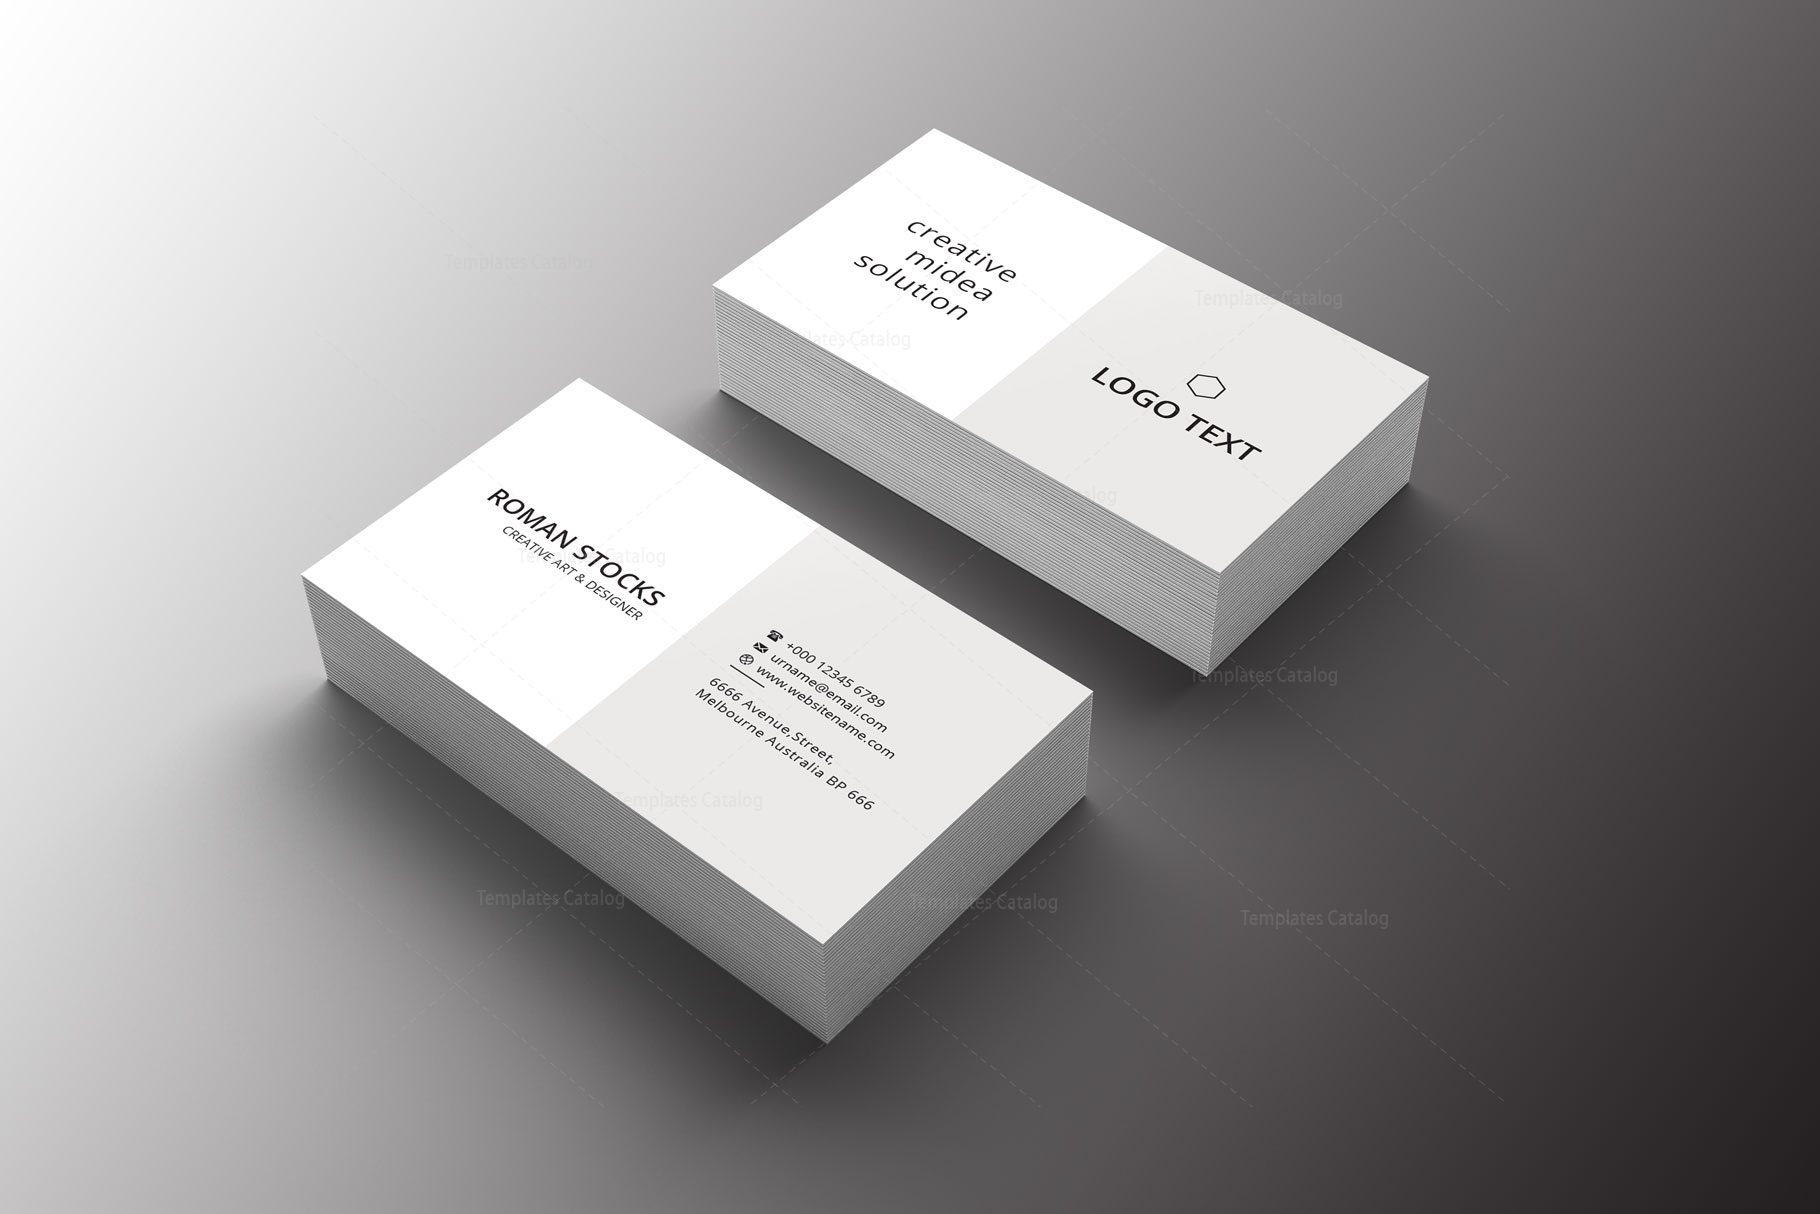 Professional business cards topsimages diamond professional business card design template catalog jpg 1820x1214 professional business cards accmission Gallery